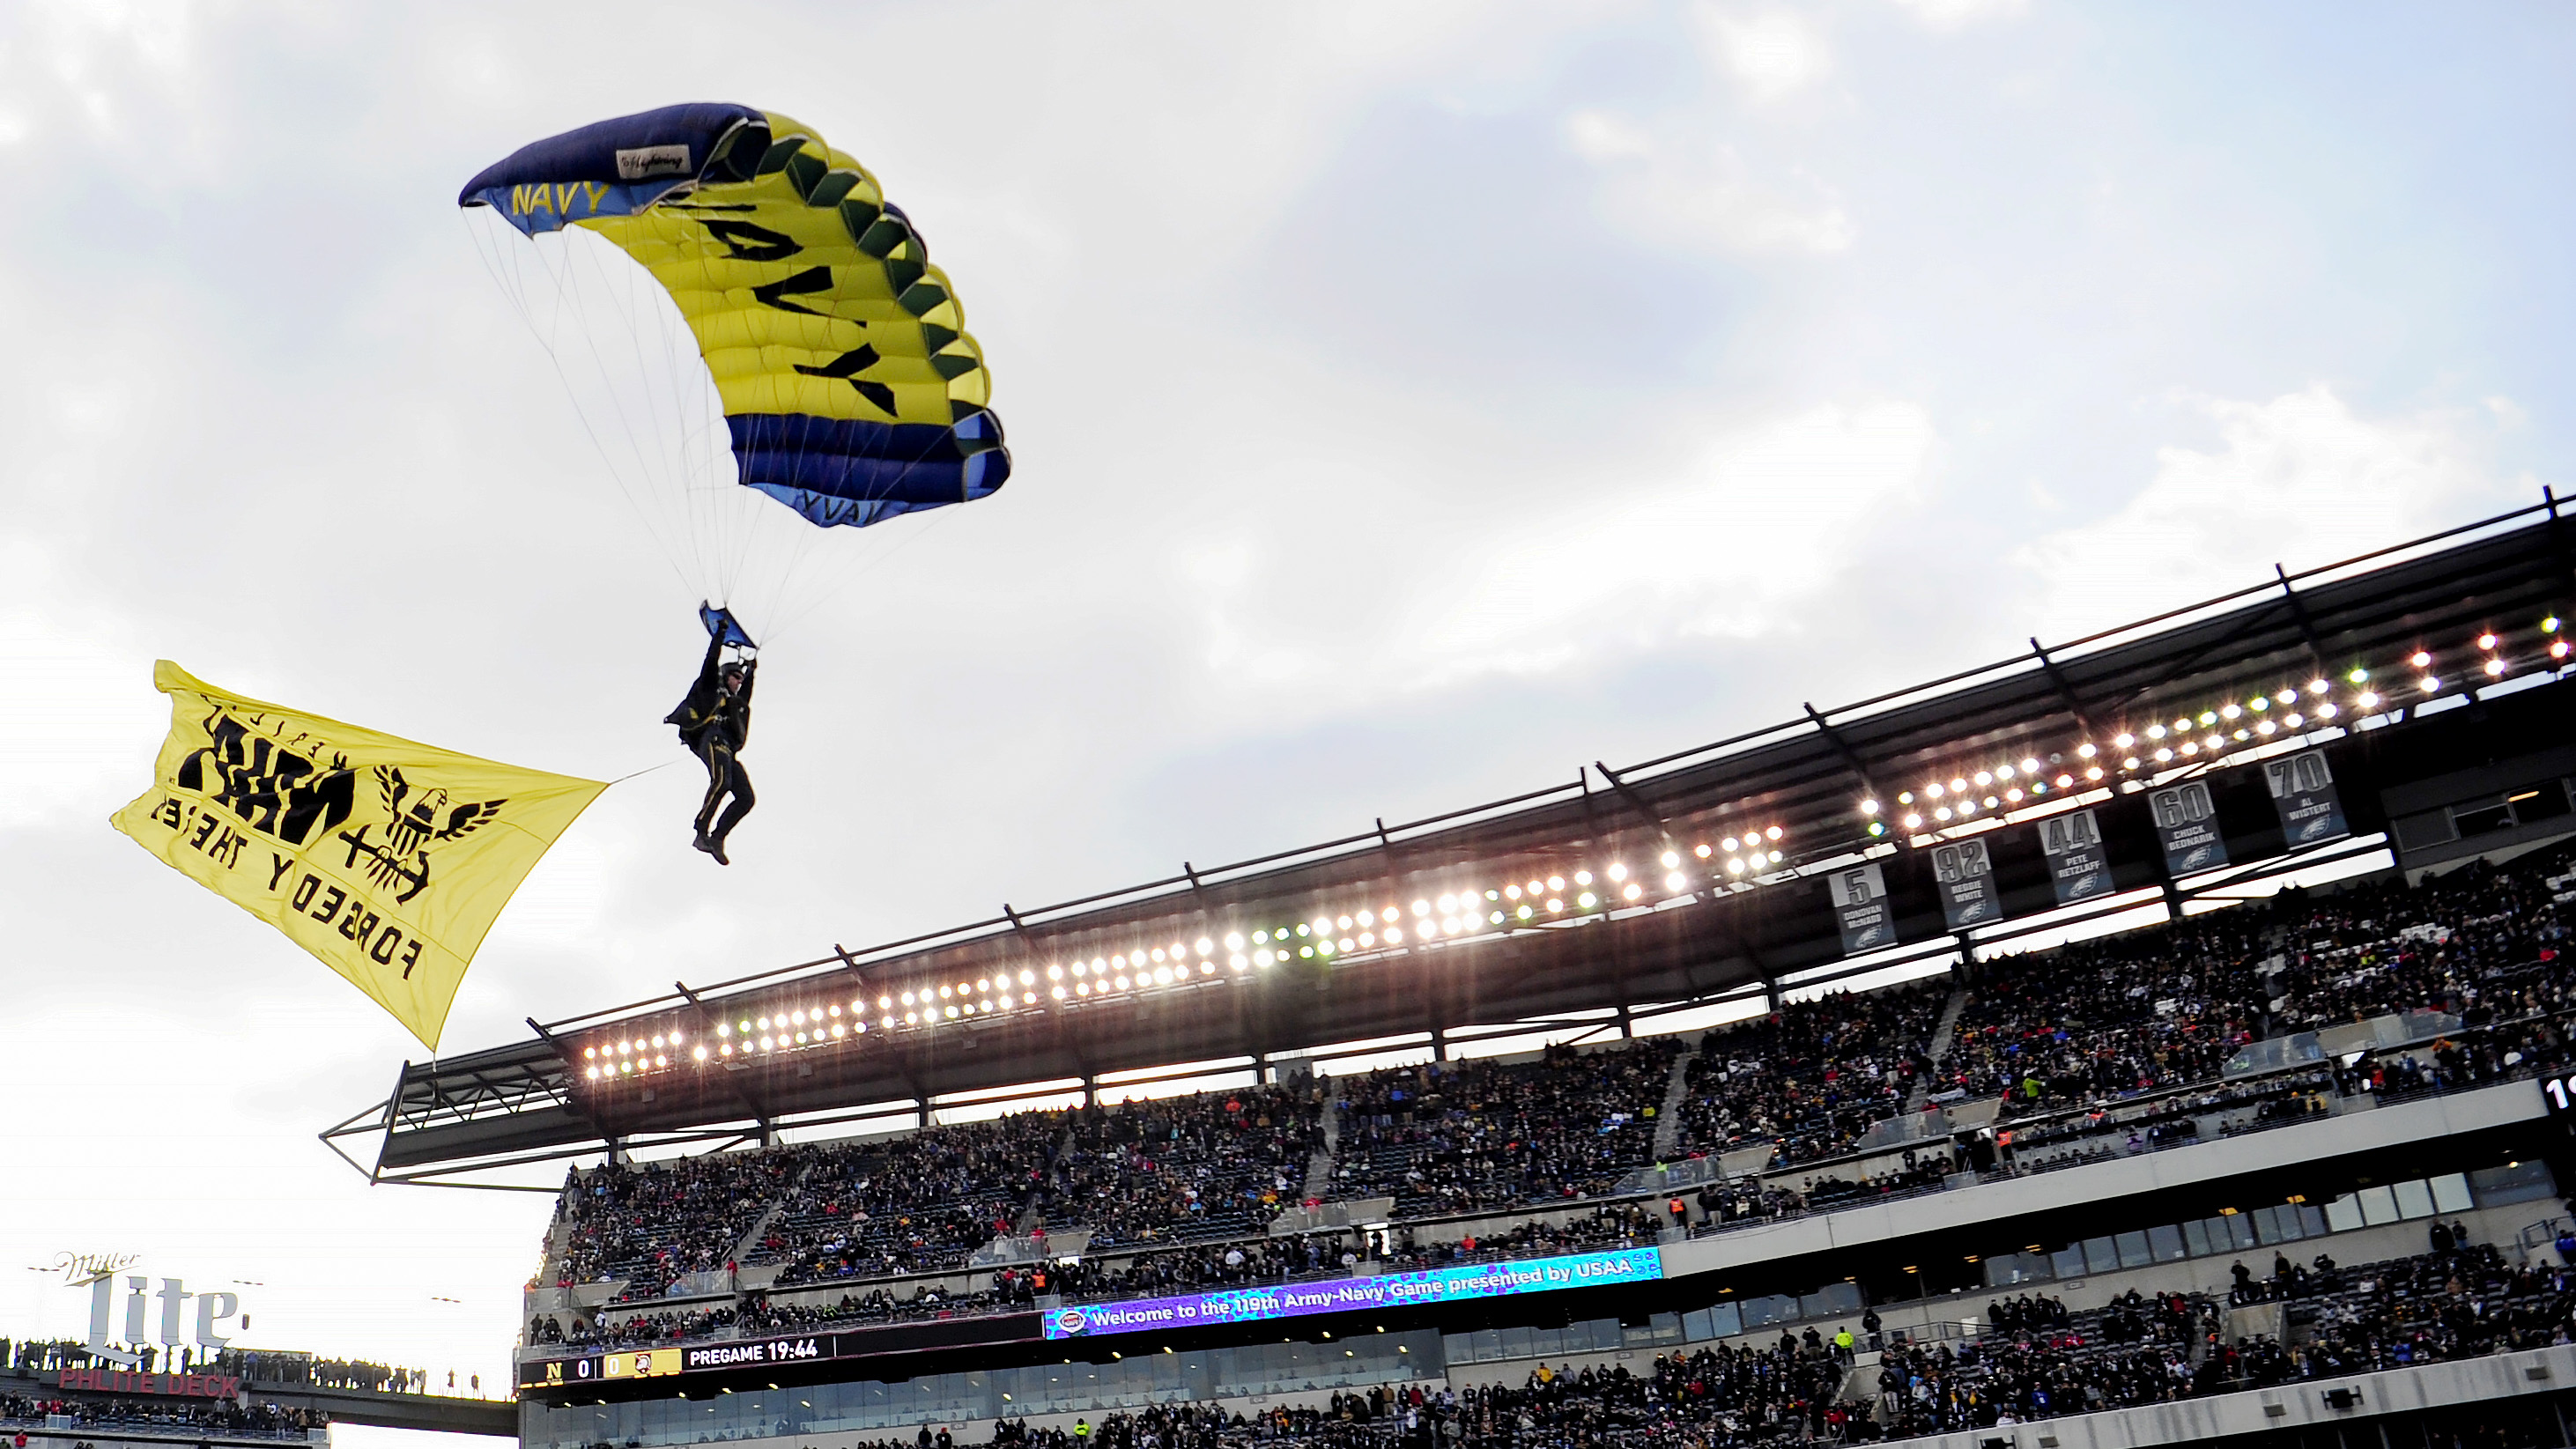 A U.S. Navy parachute jumper glides toward the field before the start of the game between Army Black Knights and Navy Midshipmen at Lincoln Financial Field on December 08, 2018 in Philadelphia, Pennsylvania. (Photo by Sarah Stier/Getty Images)